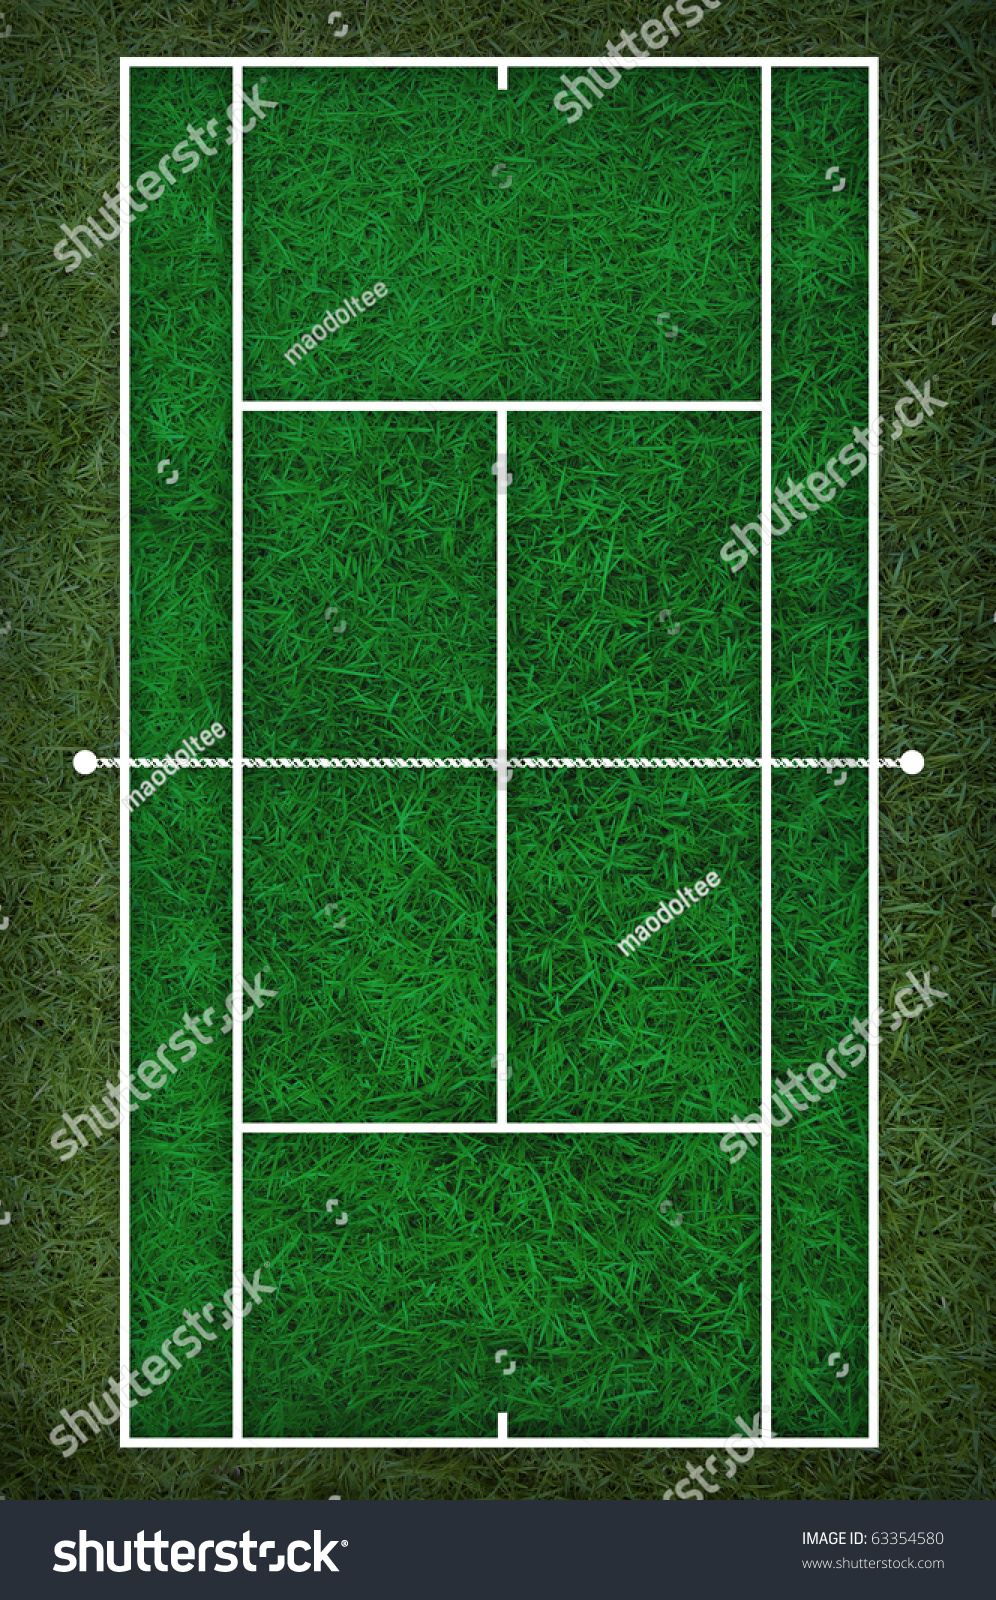 Royalty Free Tennis Court Floor Plan On Grass Pattern 63354580